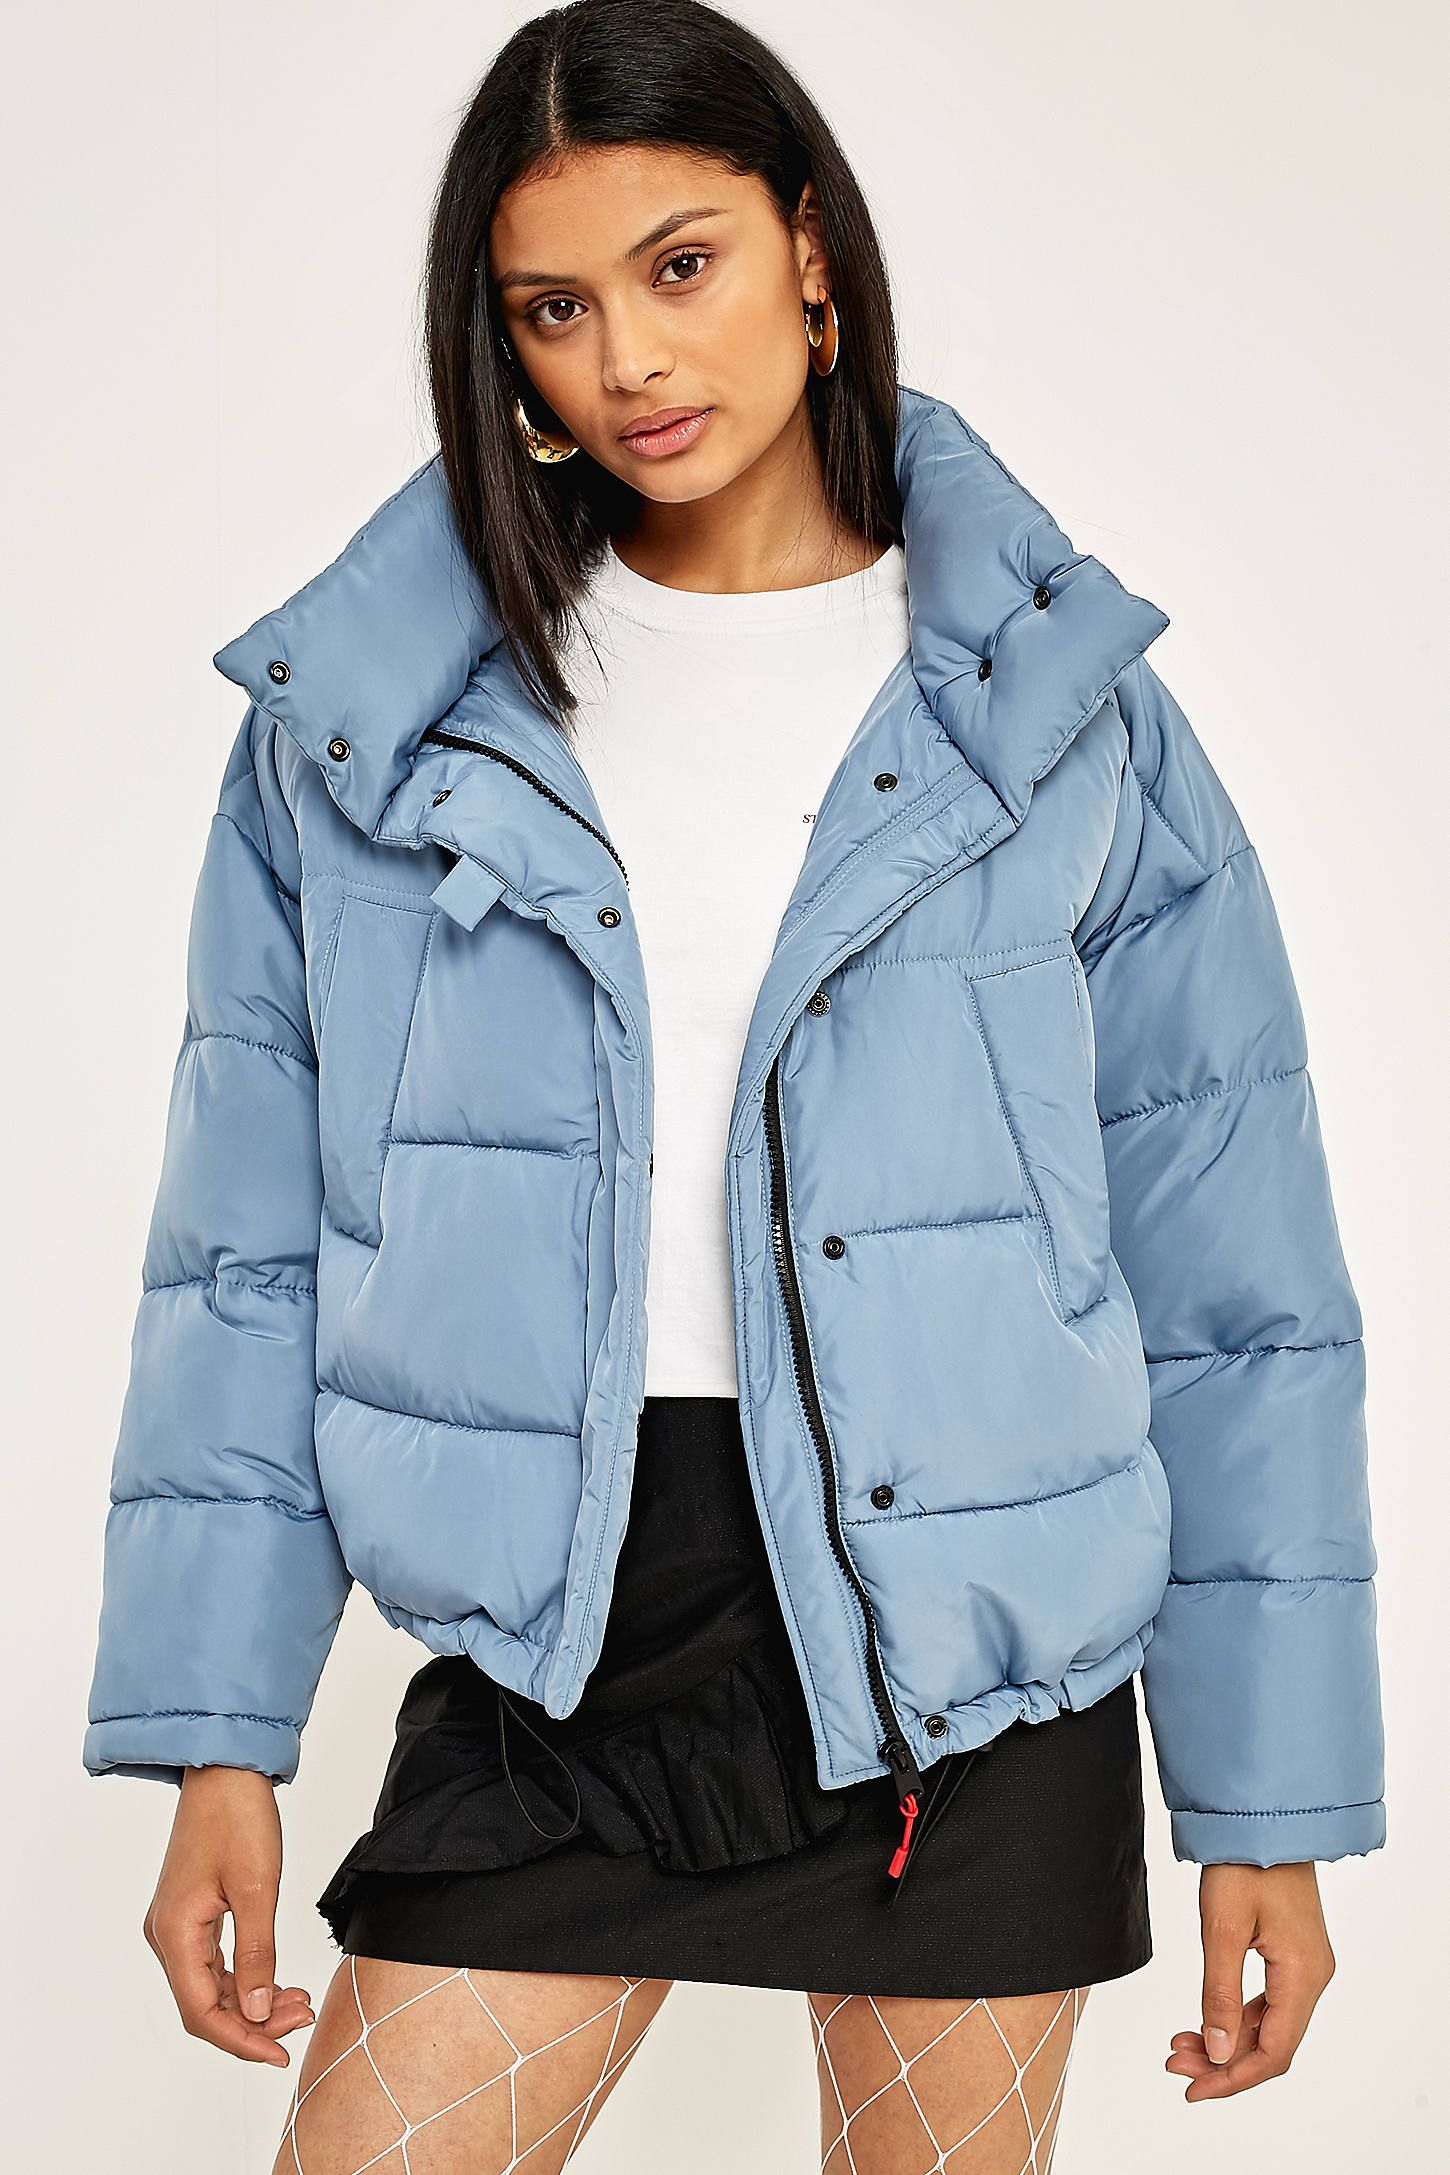 Baby Blue Cropped Puffer Jacket in 2019 | Blue puffer jacket